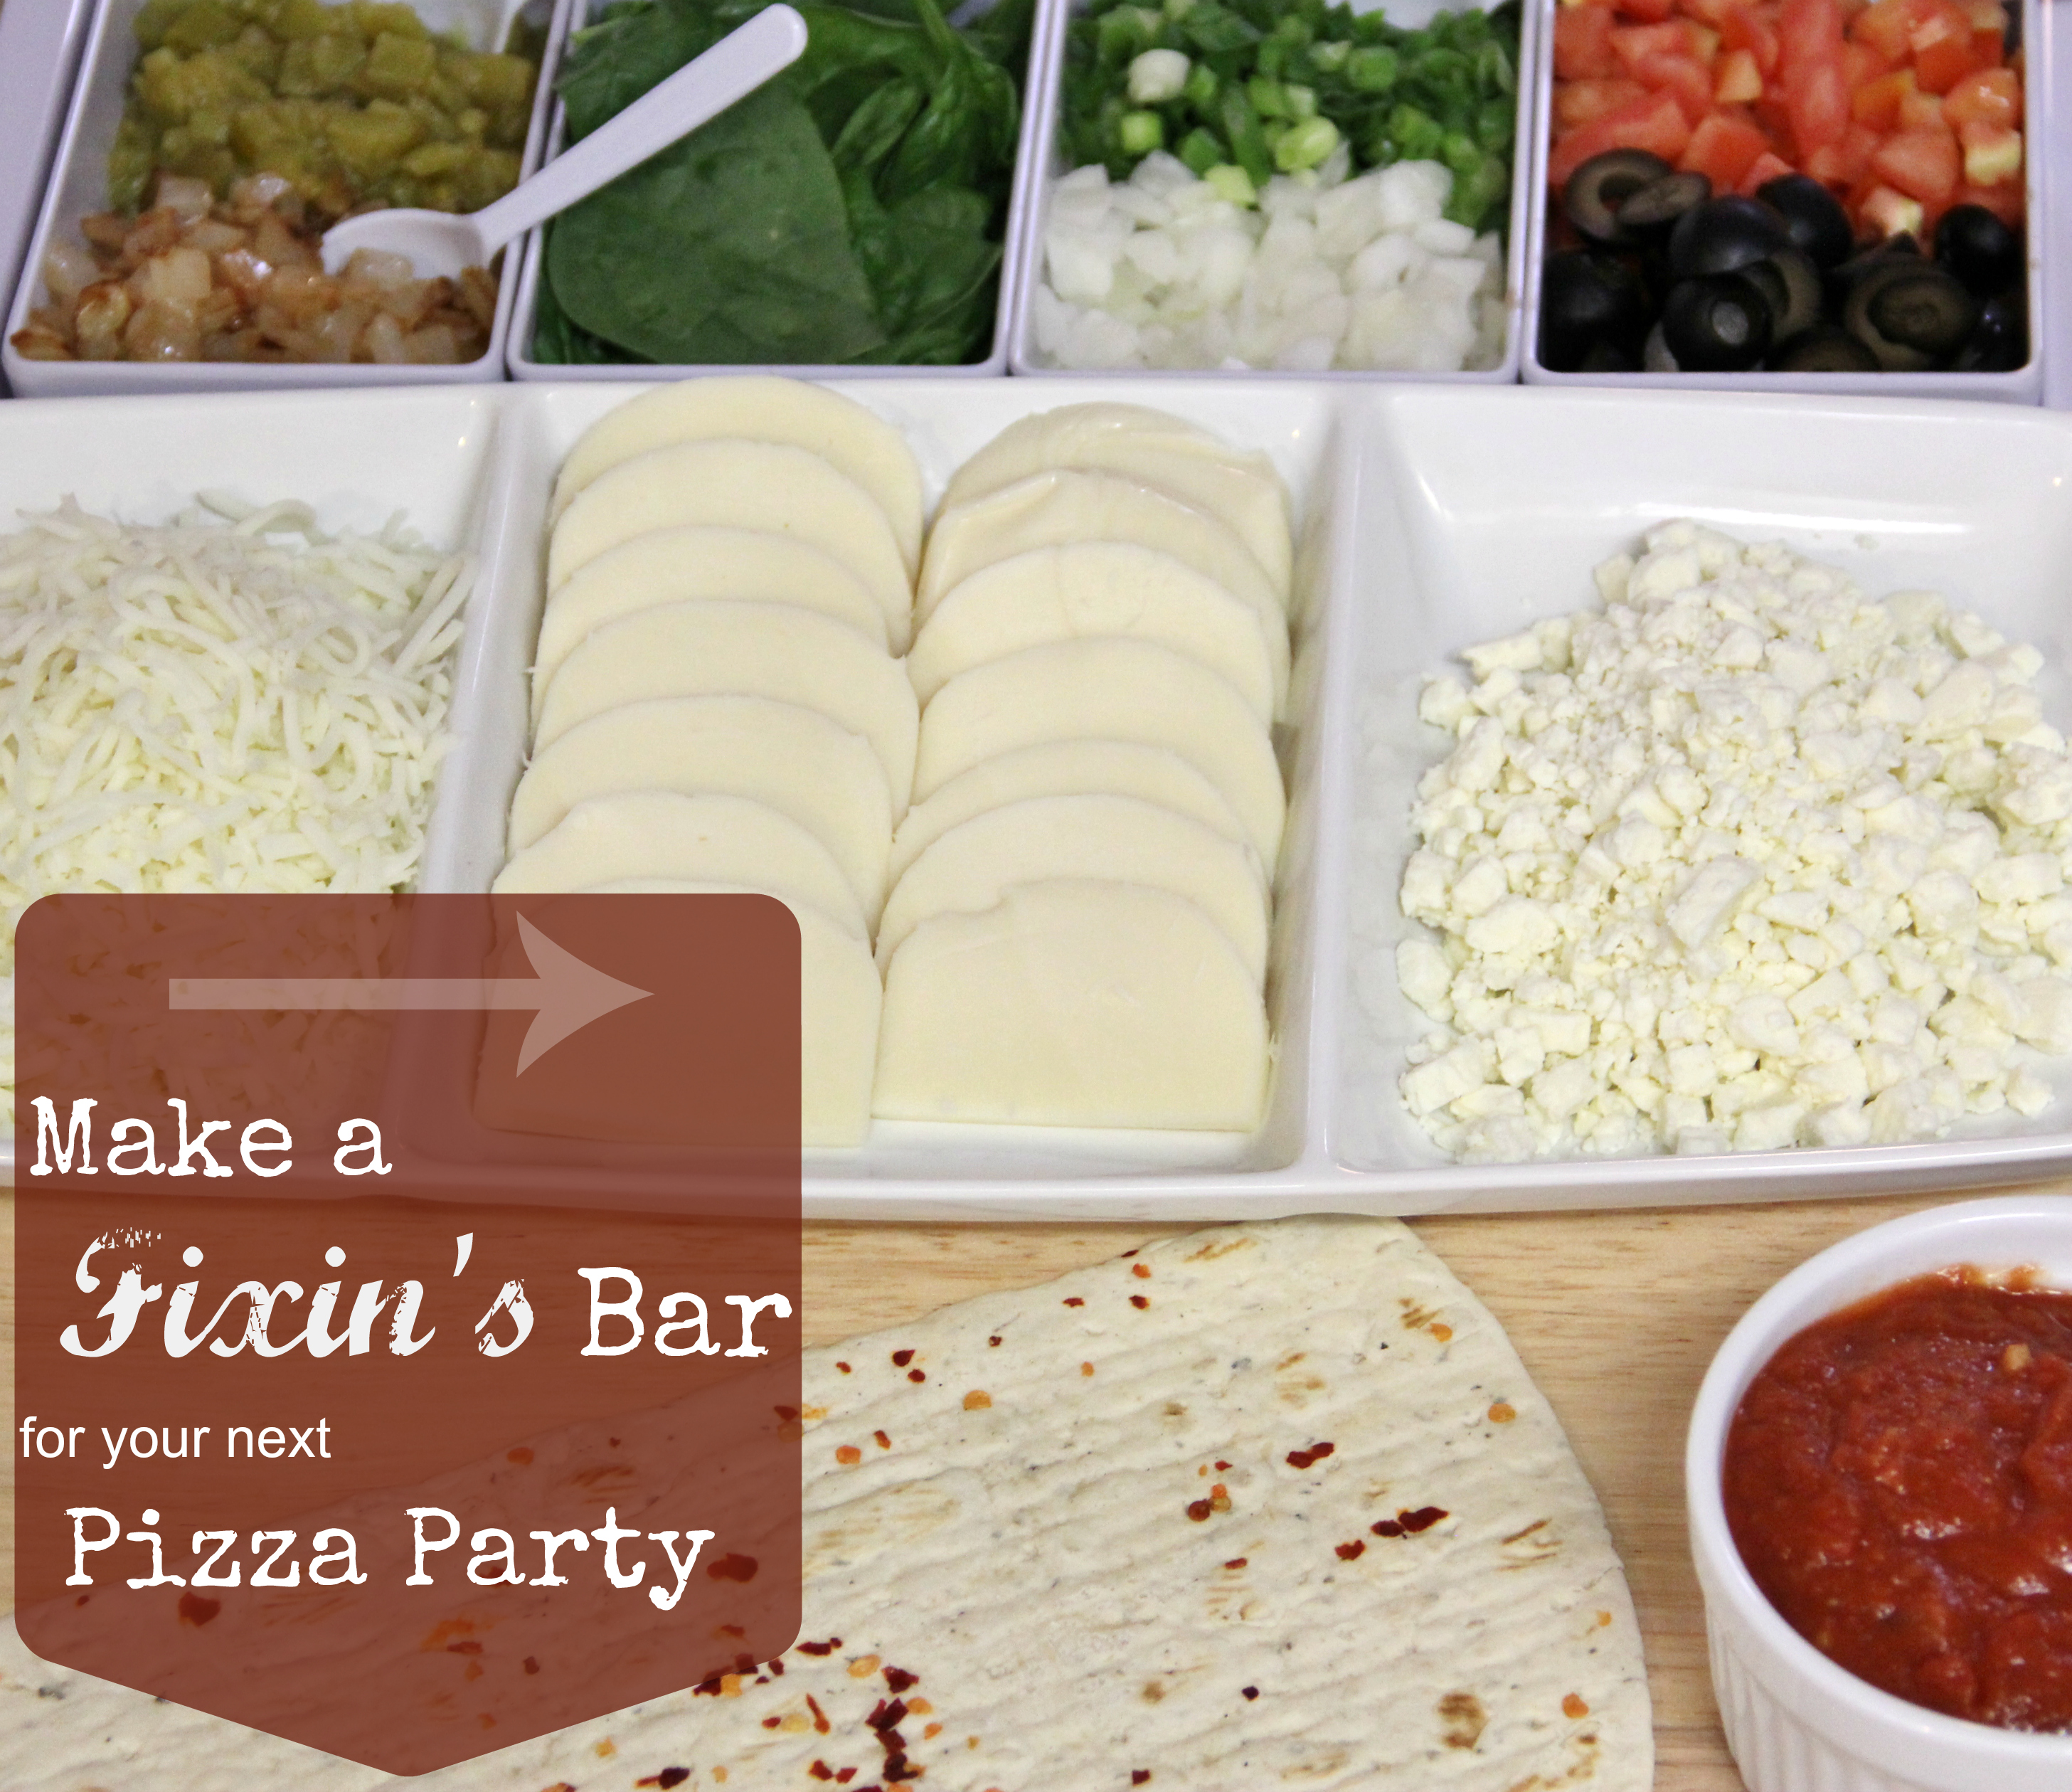 Pizza Fixin's Bar Party: Includes 4 Unique Pizza Ideas